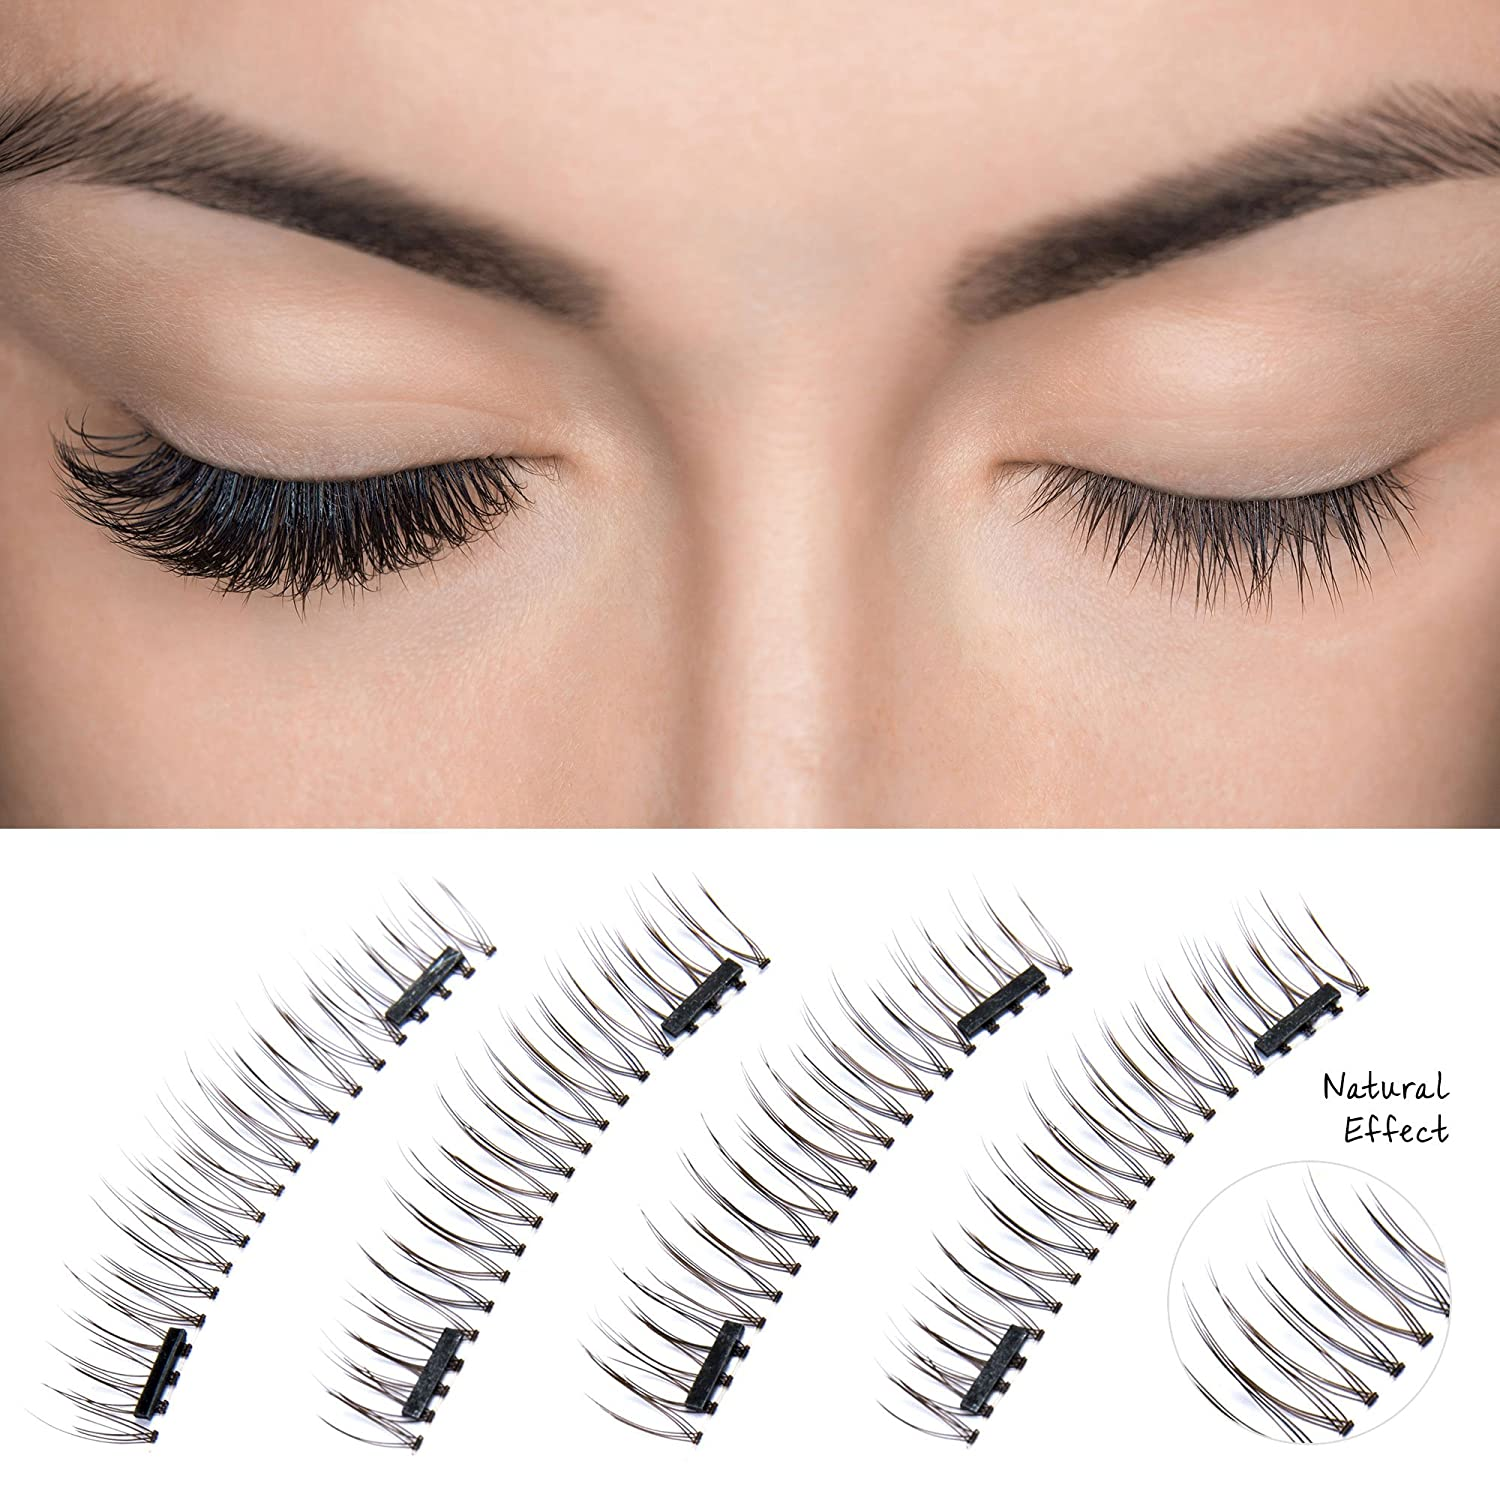 Amazon.com : Magnetic Eyelashes Dual Magnet Glue-free 3D Reusable Full Size Premium Quality Natural False Lashes - 2018 : Beauty